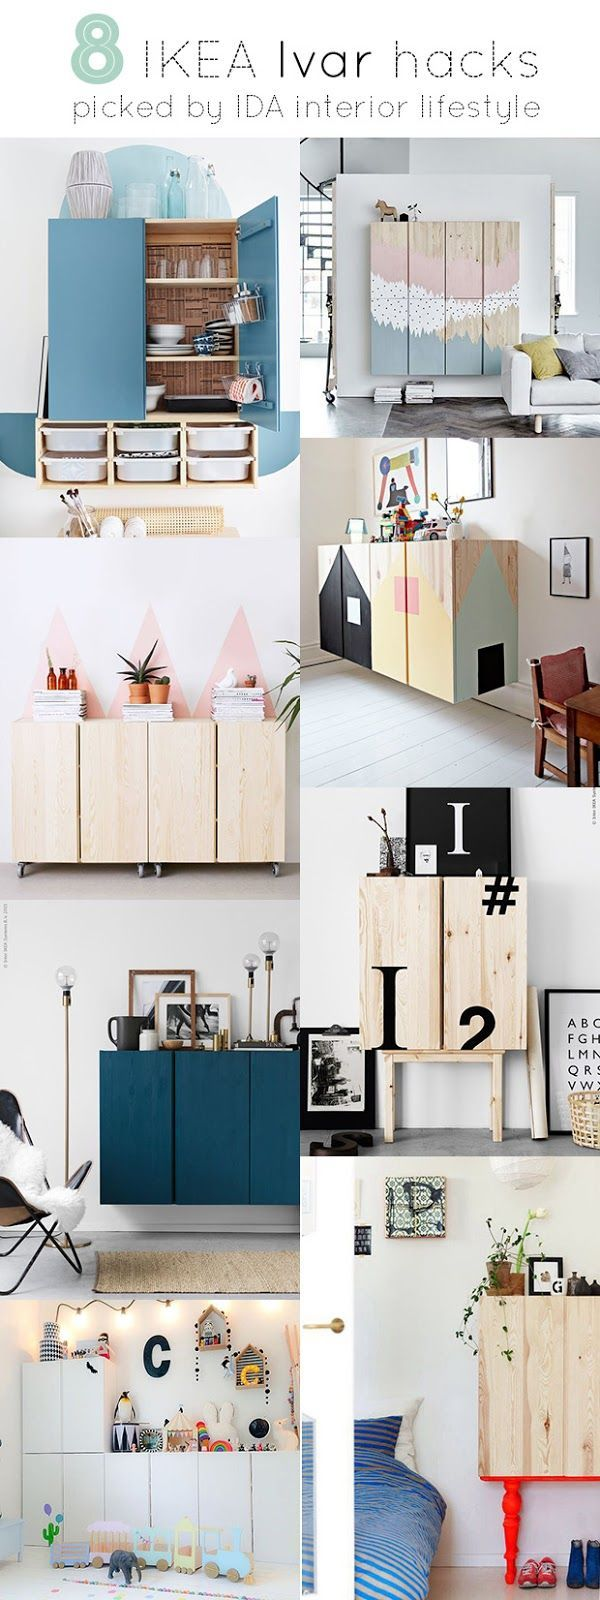 The IVAR cabinet from Ikea {the same one I bought for my TV}, seems to be one of the latest pieces launched by the swedish company, that best lends itself to being hacked. The simple shape and the ba